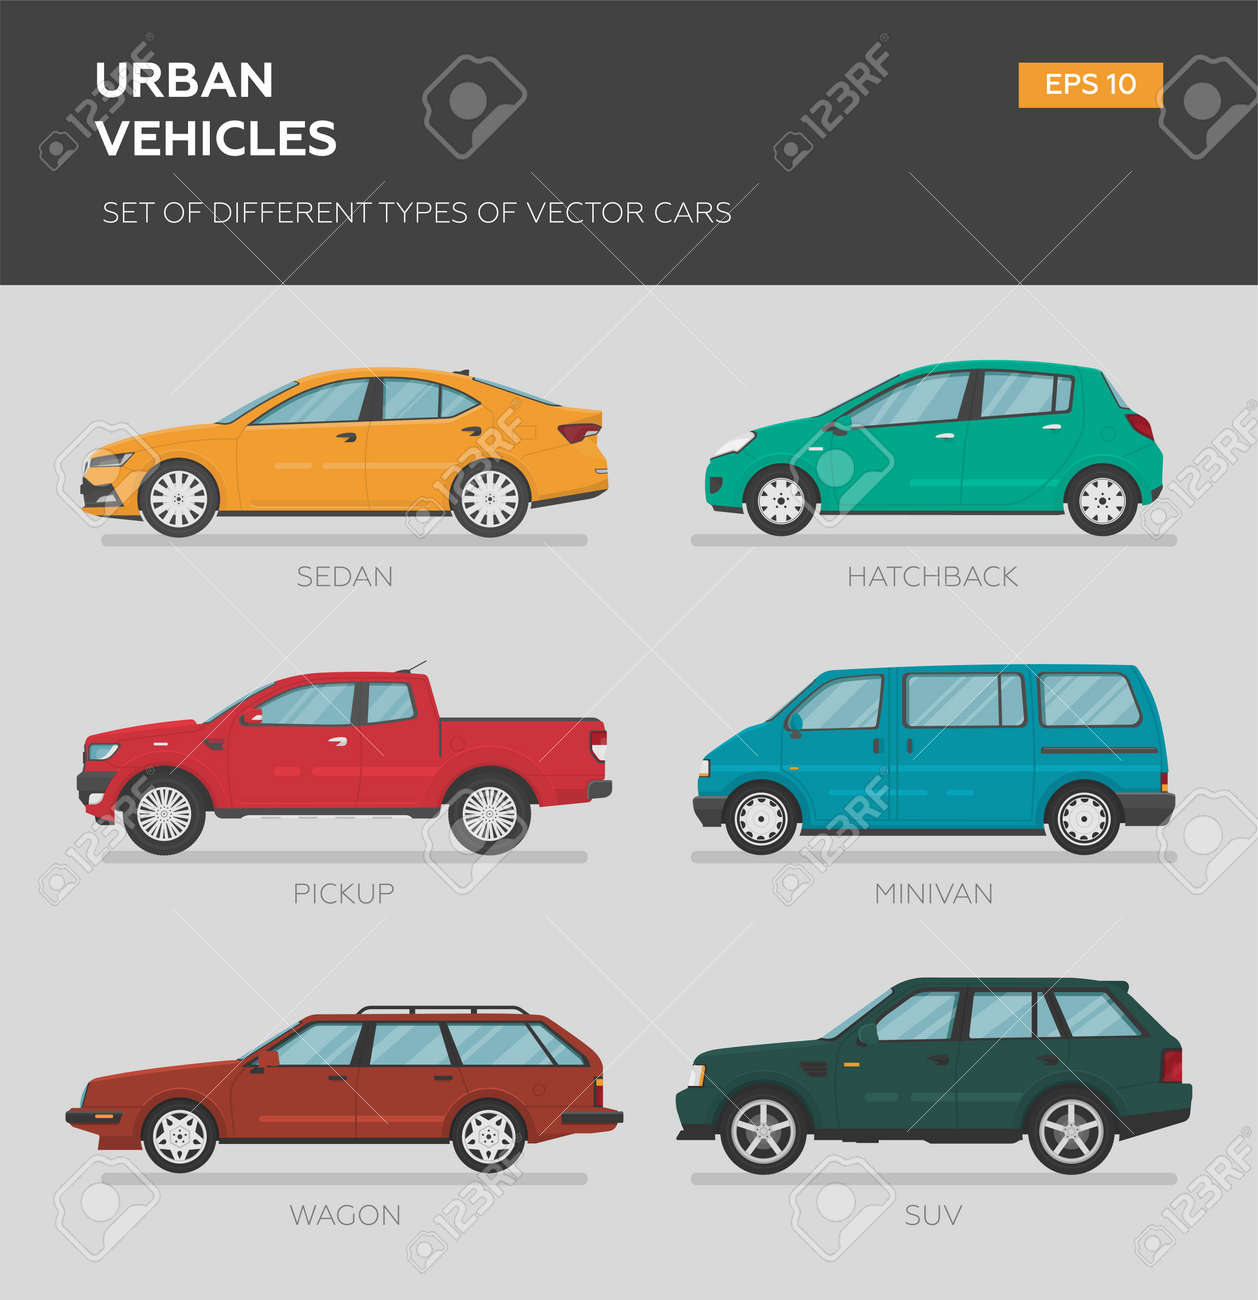 Urban vehicles. Set of different types of vector cars: sedan, muscle car, minivan, pickup, truck, coupe. Cartoon flat illustration. Auto for graphic and web design. - 166634103